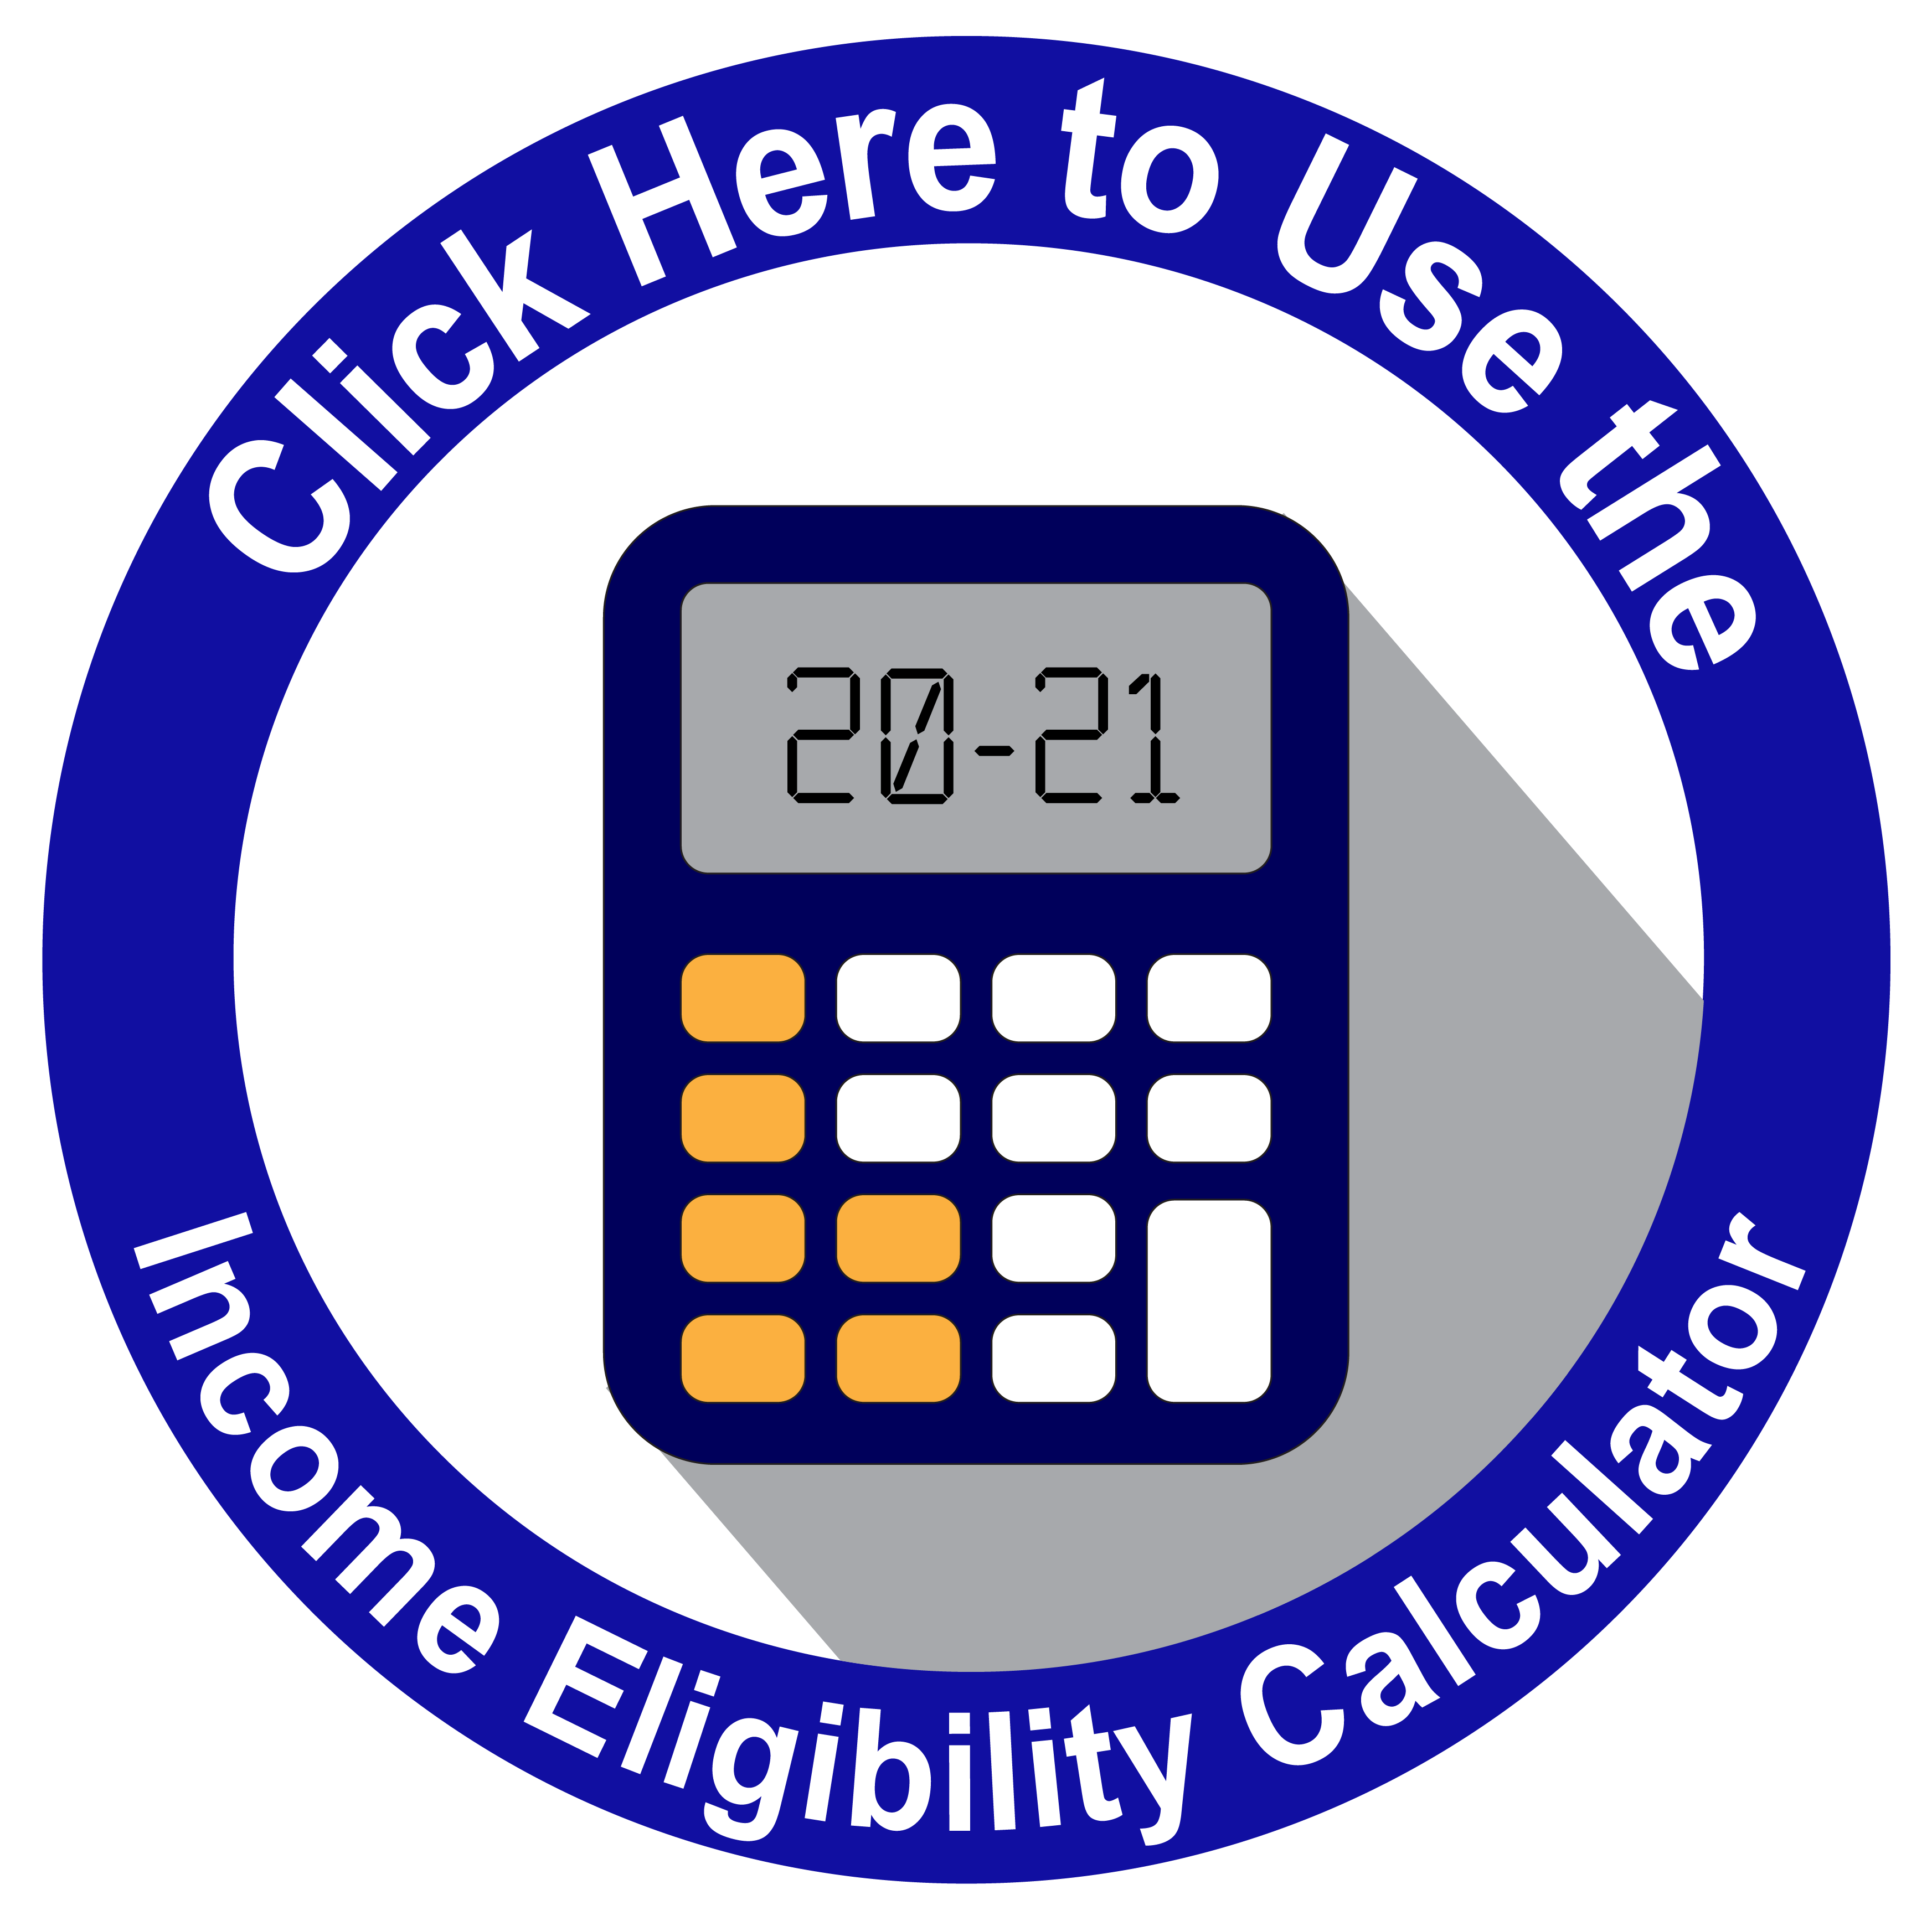 Clcik here to use the Income Eligibility Calculator